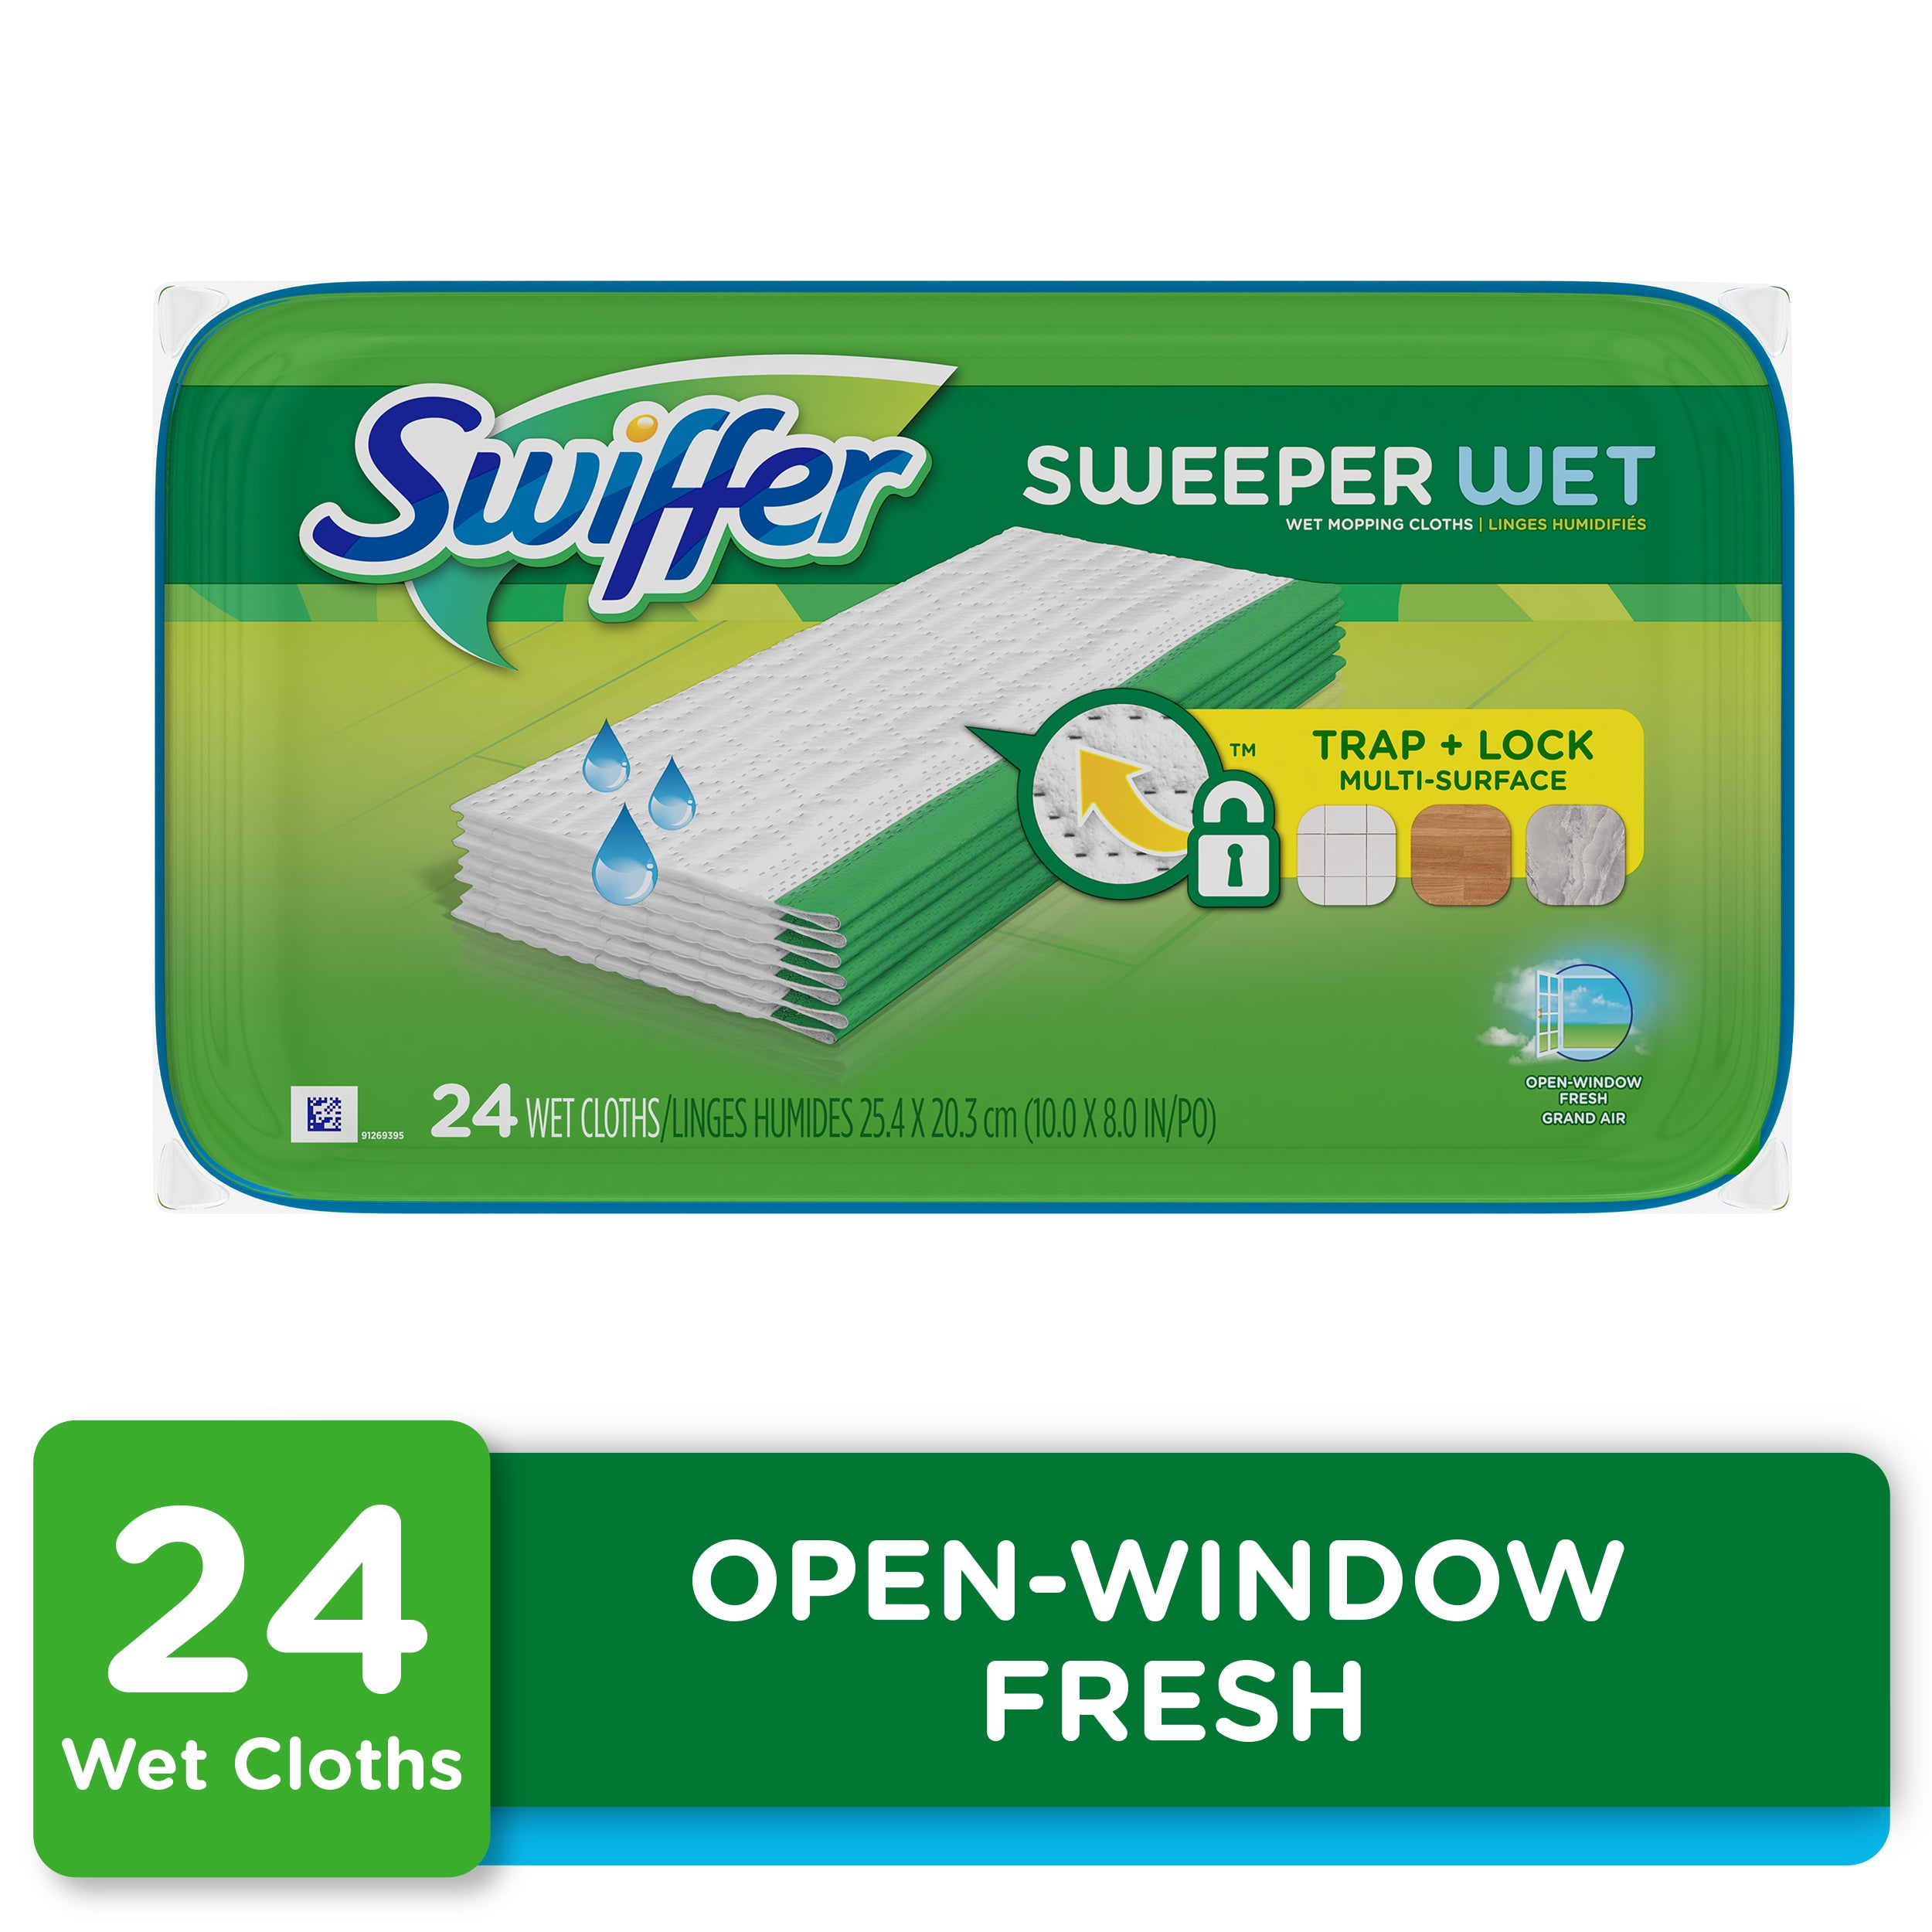 Swiffer Sweeper Wet Pad Refills, Open Window Fresh, 24 Ct - FLJ CORPORATIONS